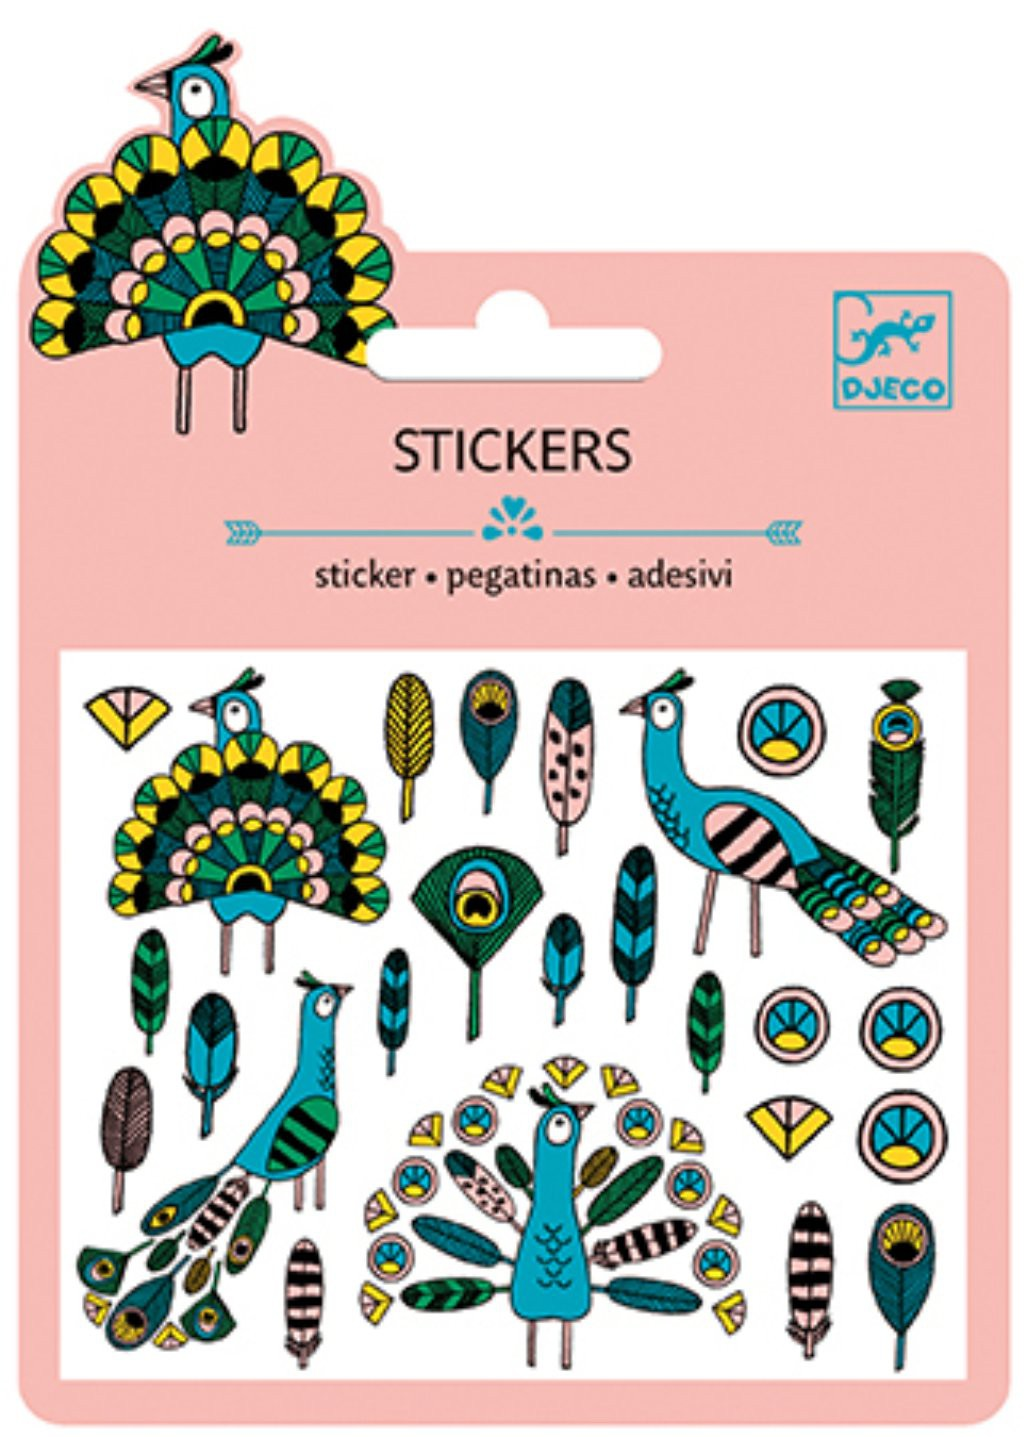 25 Stickers - Plomes y Paons